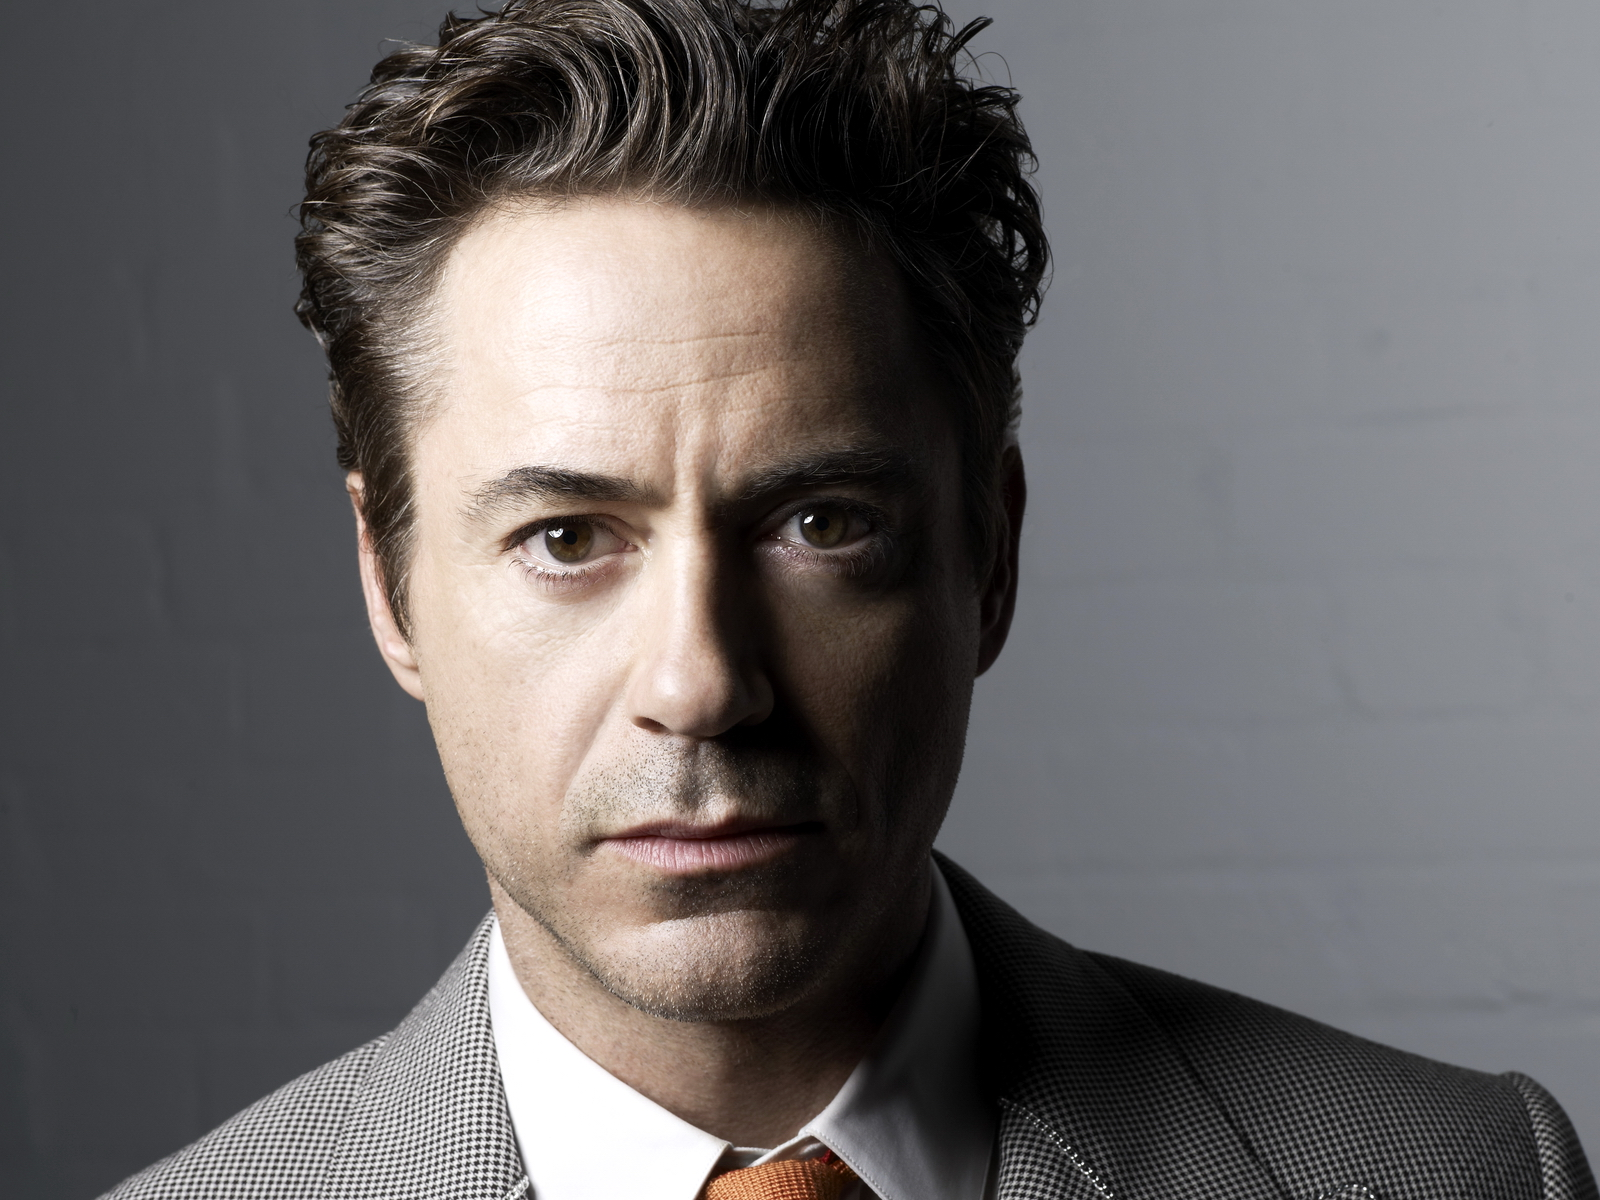 Robert Downey Jr Photo HD Wallpaper Wallpaper